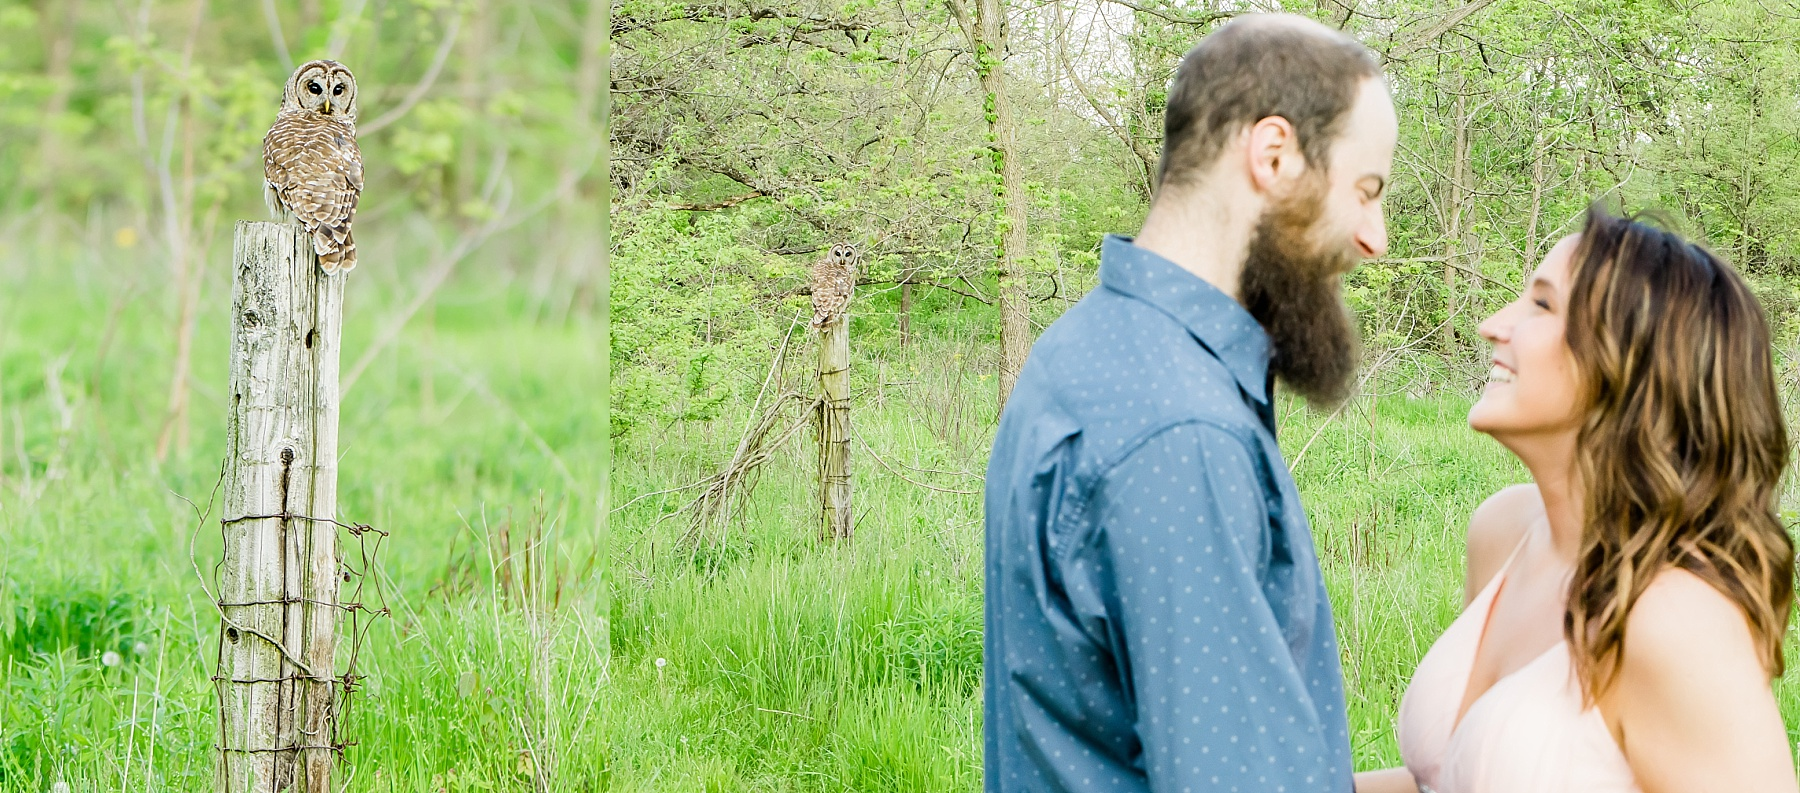 monticello indiana wedding engagement photography simple adventure weird_0024.jpg